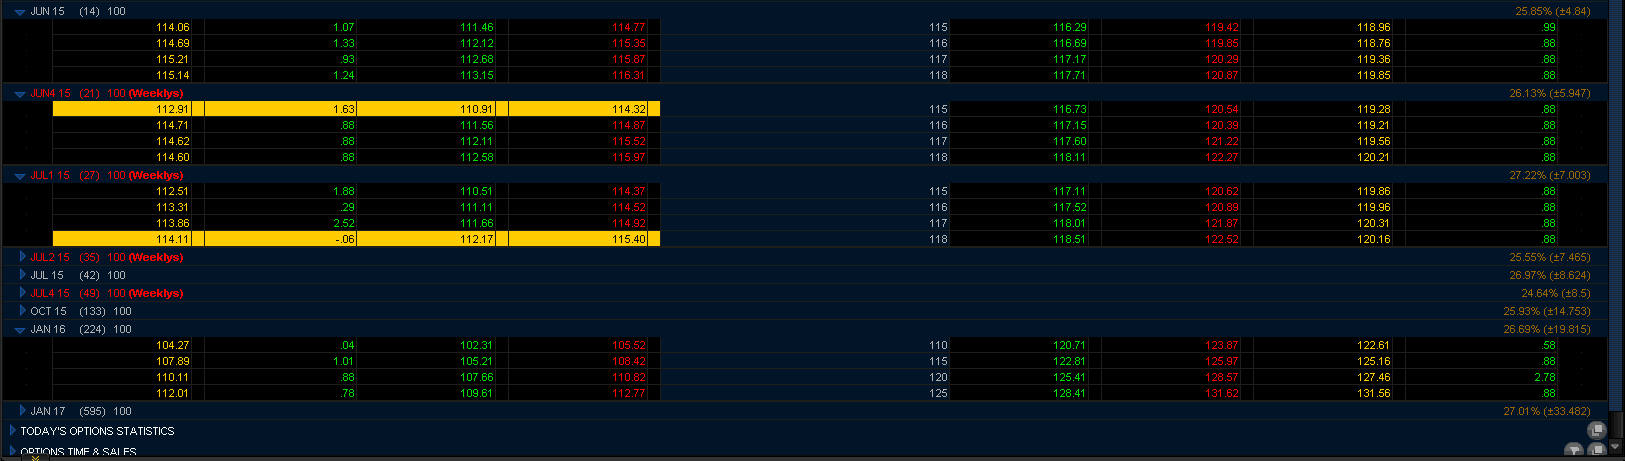 Equities Lab | Screen for Covered Calls using PE ratios and